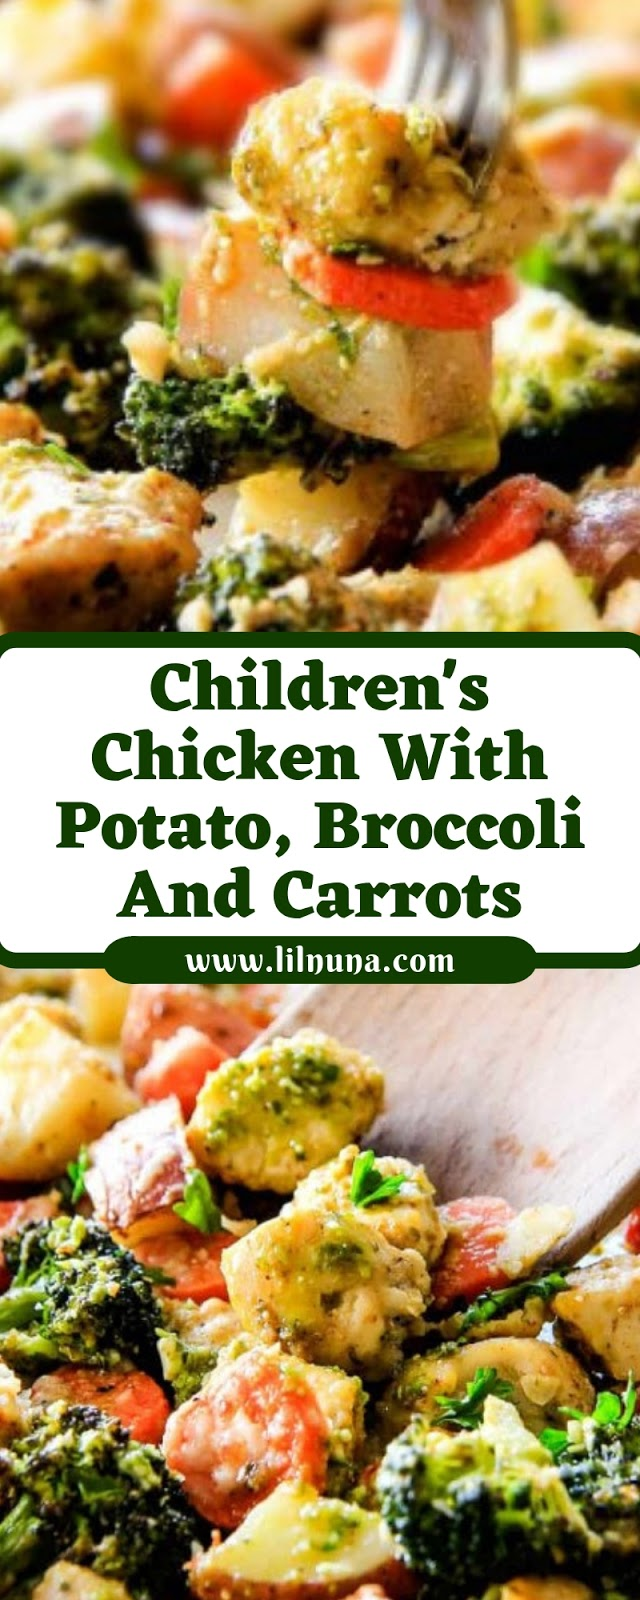 Children's Chicken With Potato, Broccoli And Carrots